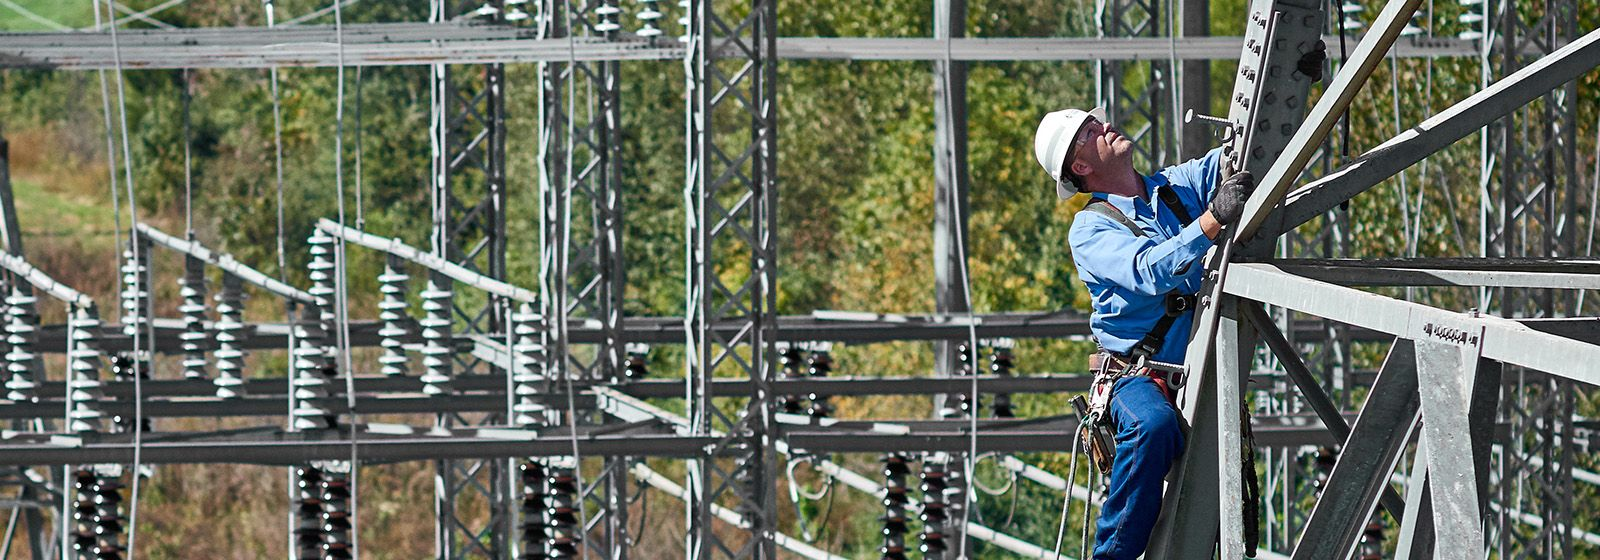 How to become an energy company lineworker